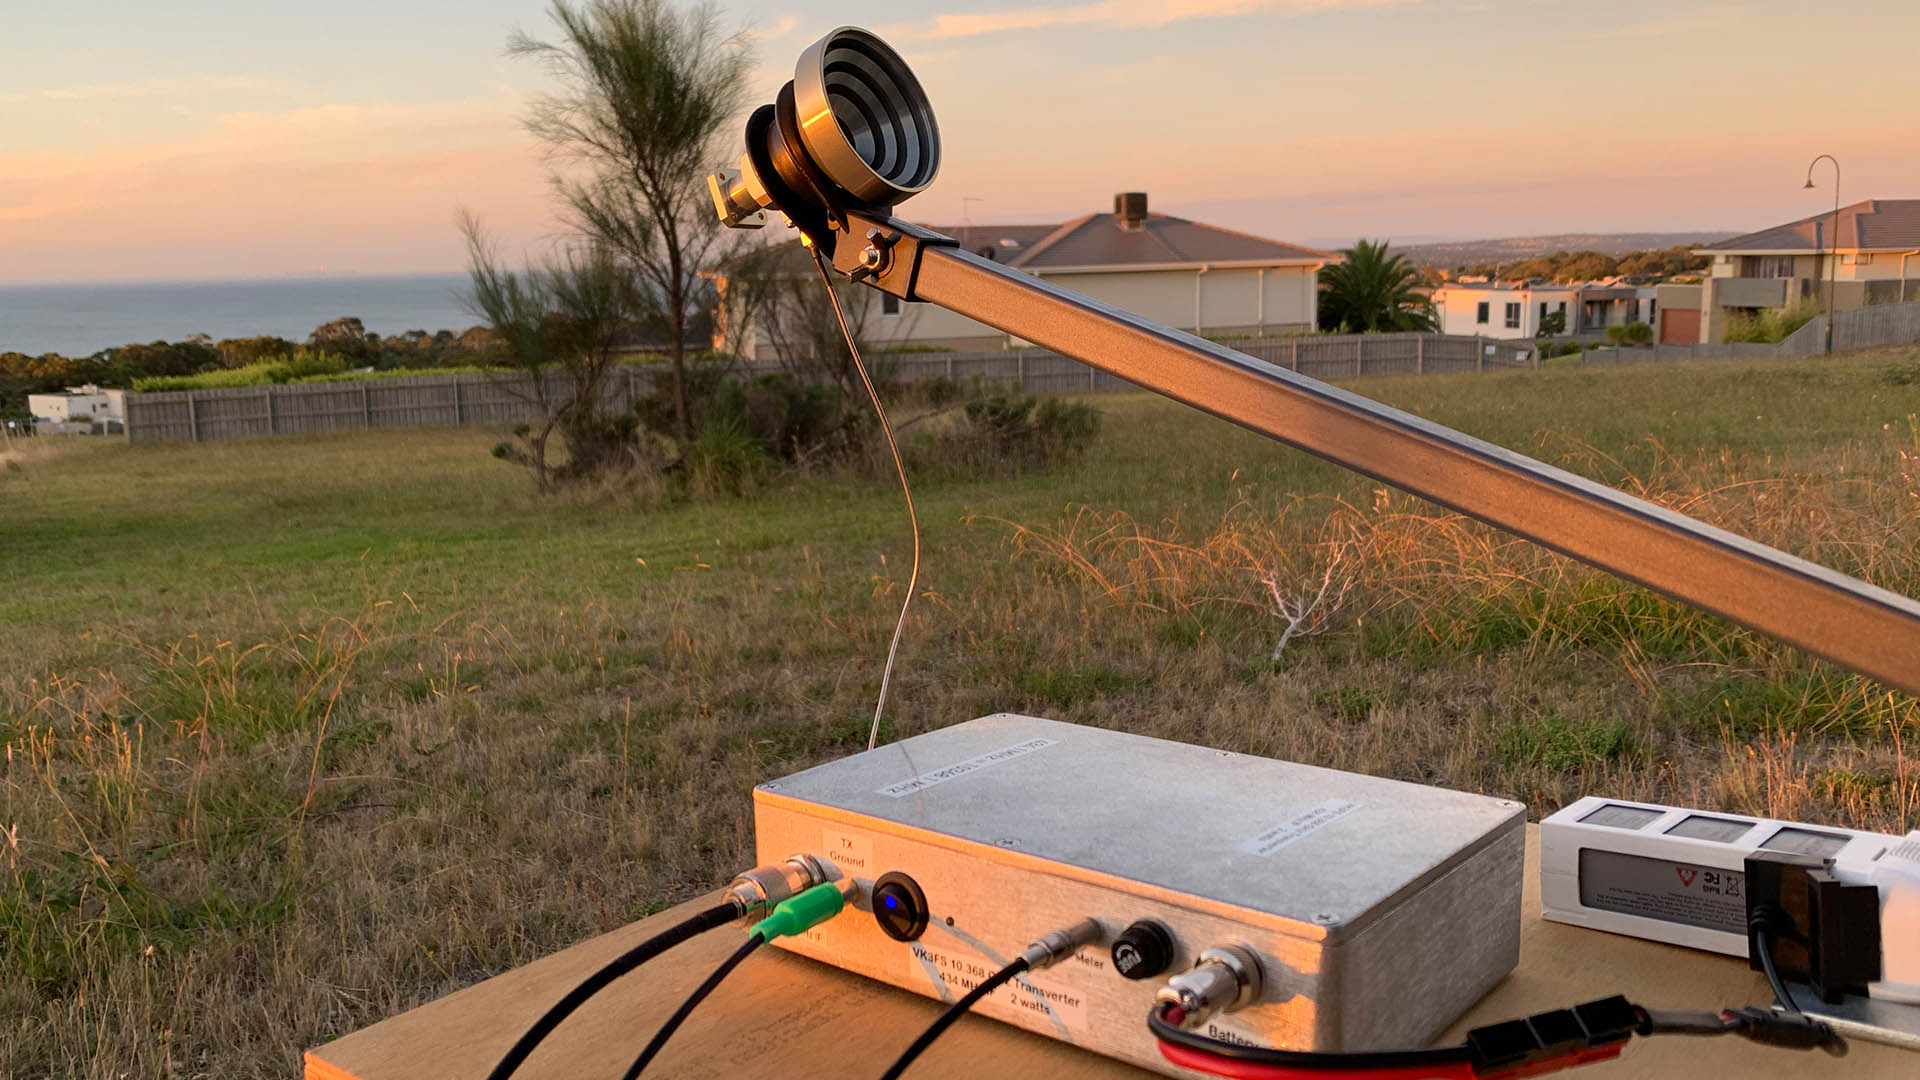 Picture of 10 GHz Amateur Radio Transverter and W1GHZ feed horn